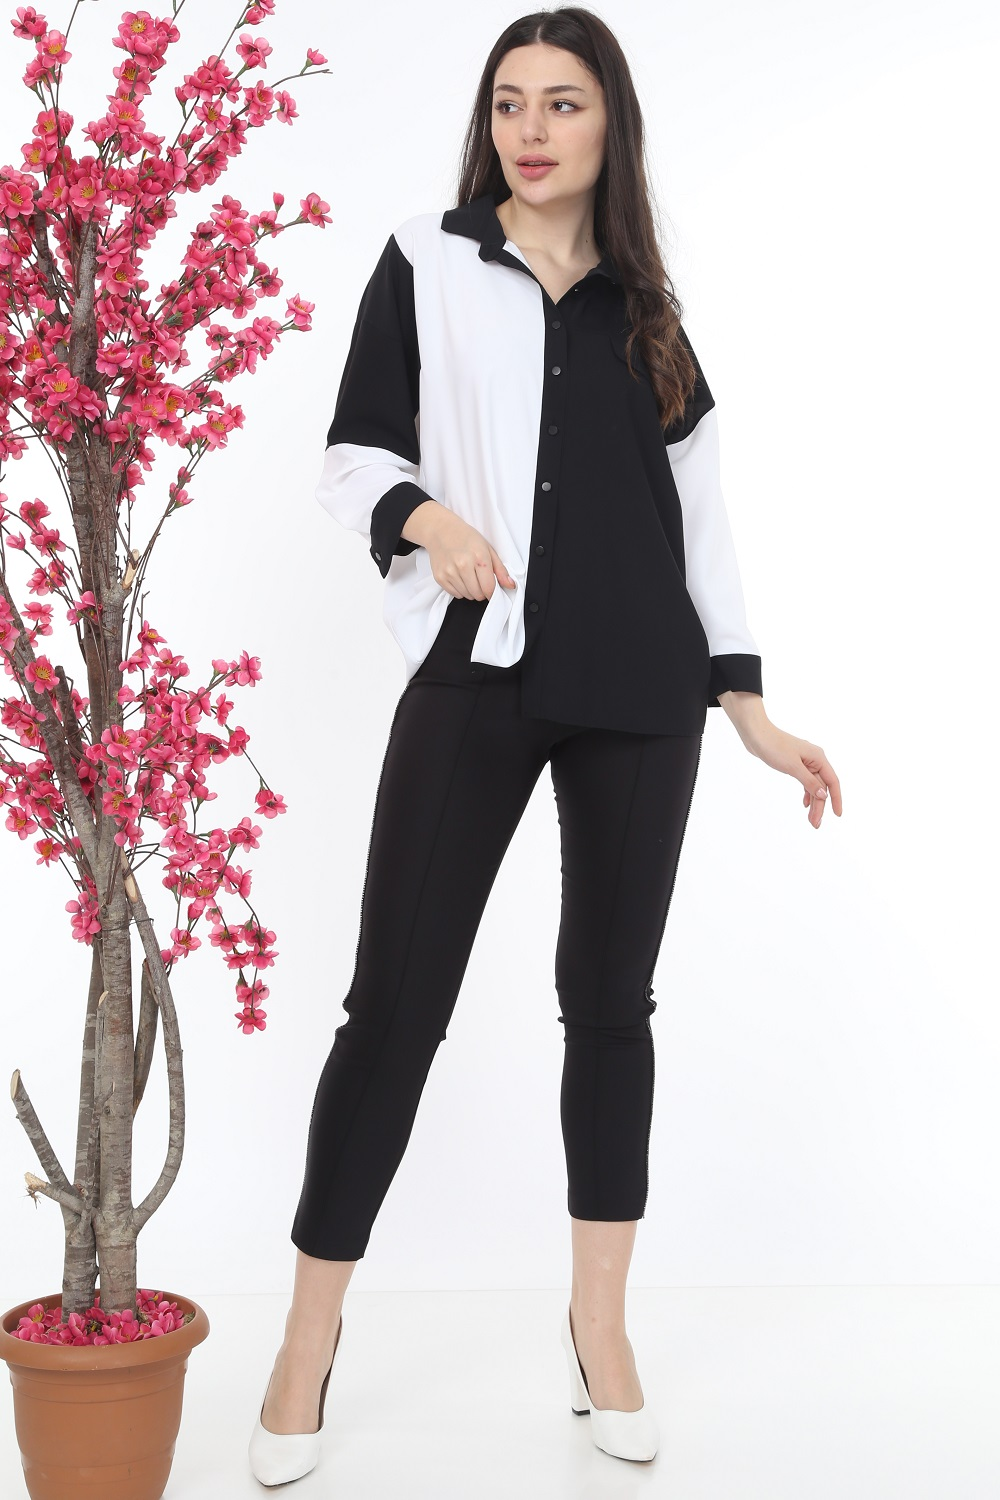 Collar Buttoned Black and White Suit